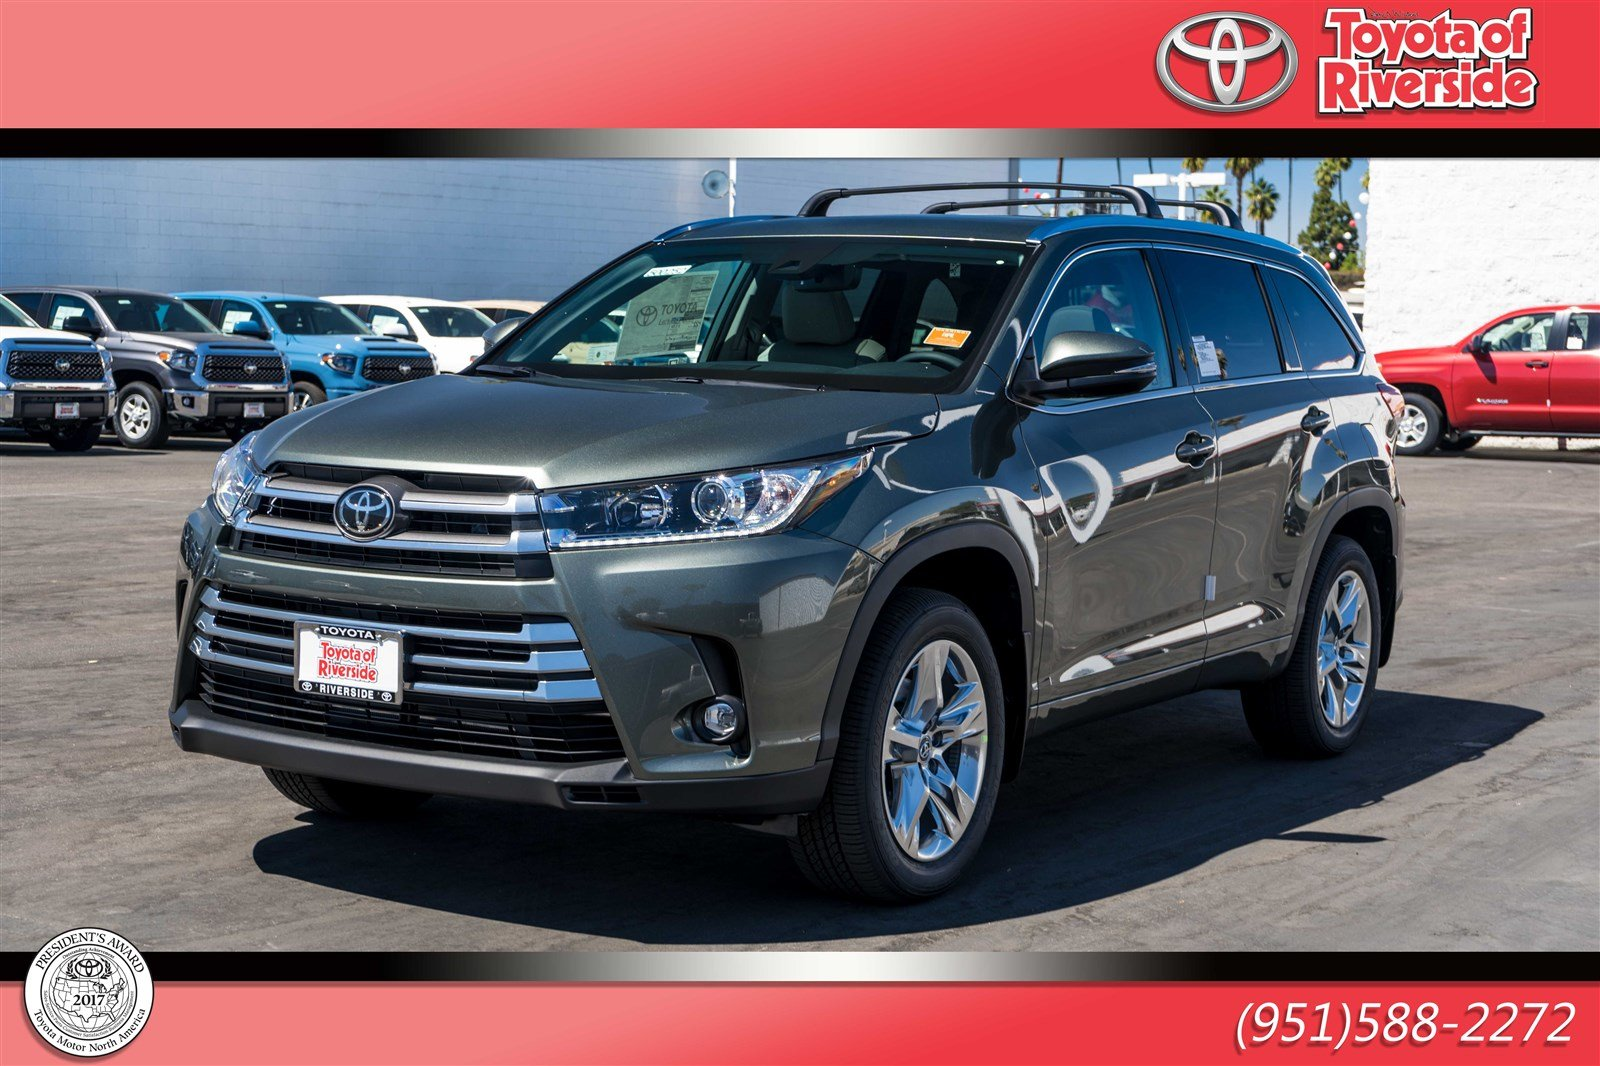 Toyota Highlander Owners Manual: Utility vehicle feature